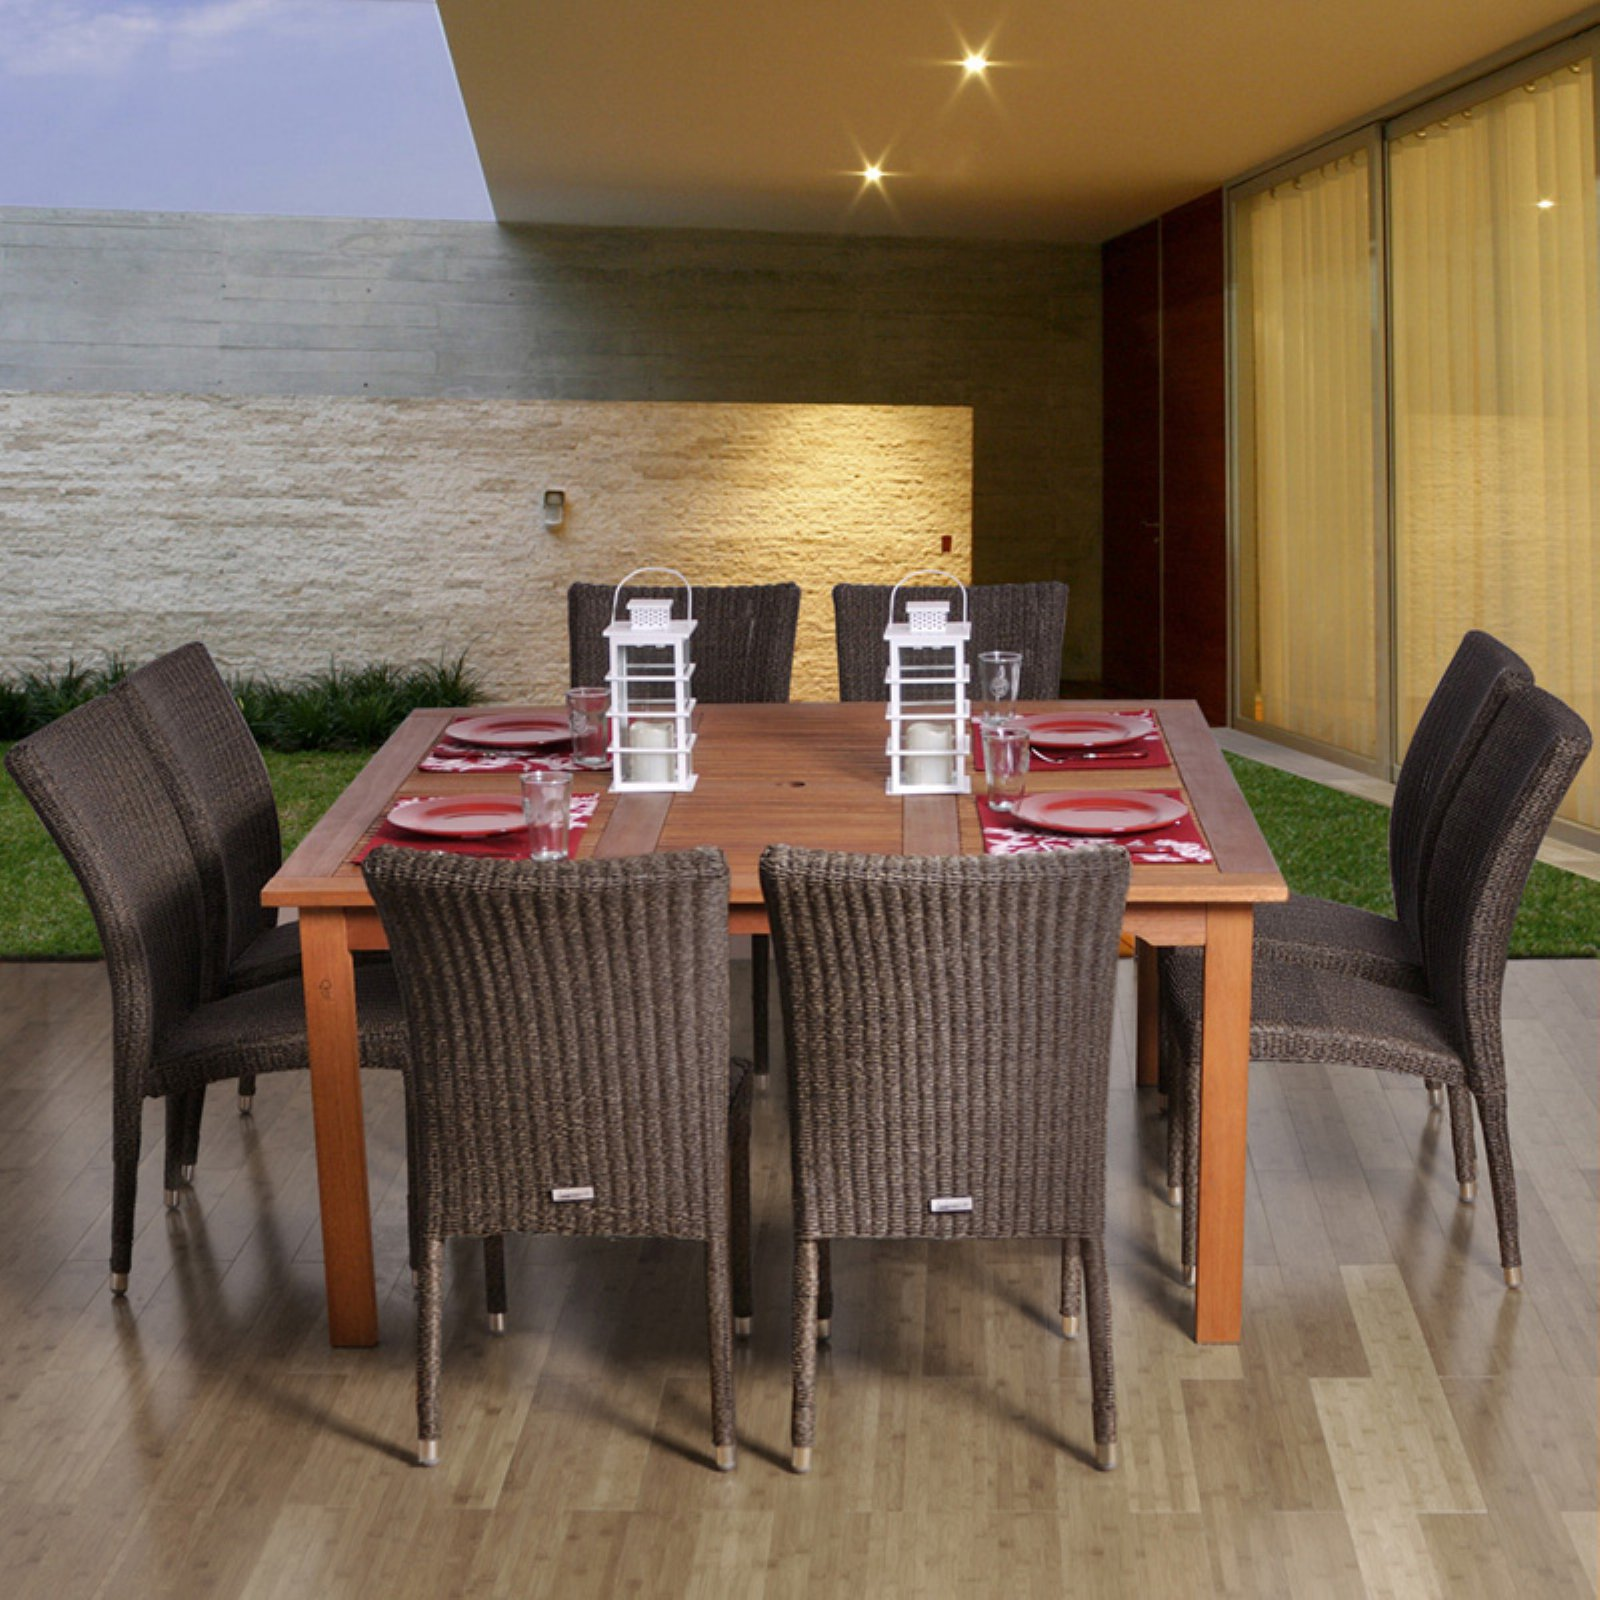 Amazonia Provence Square Eucalyptus and Wicker Dining Room Set Seats 8 by International Home Miami